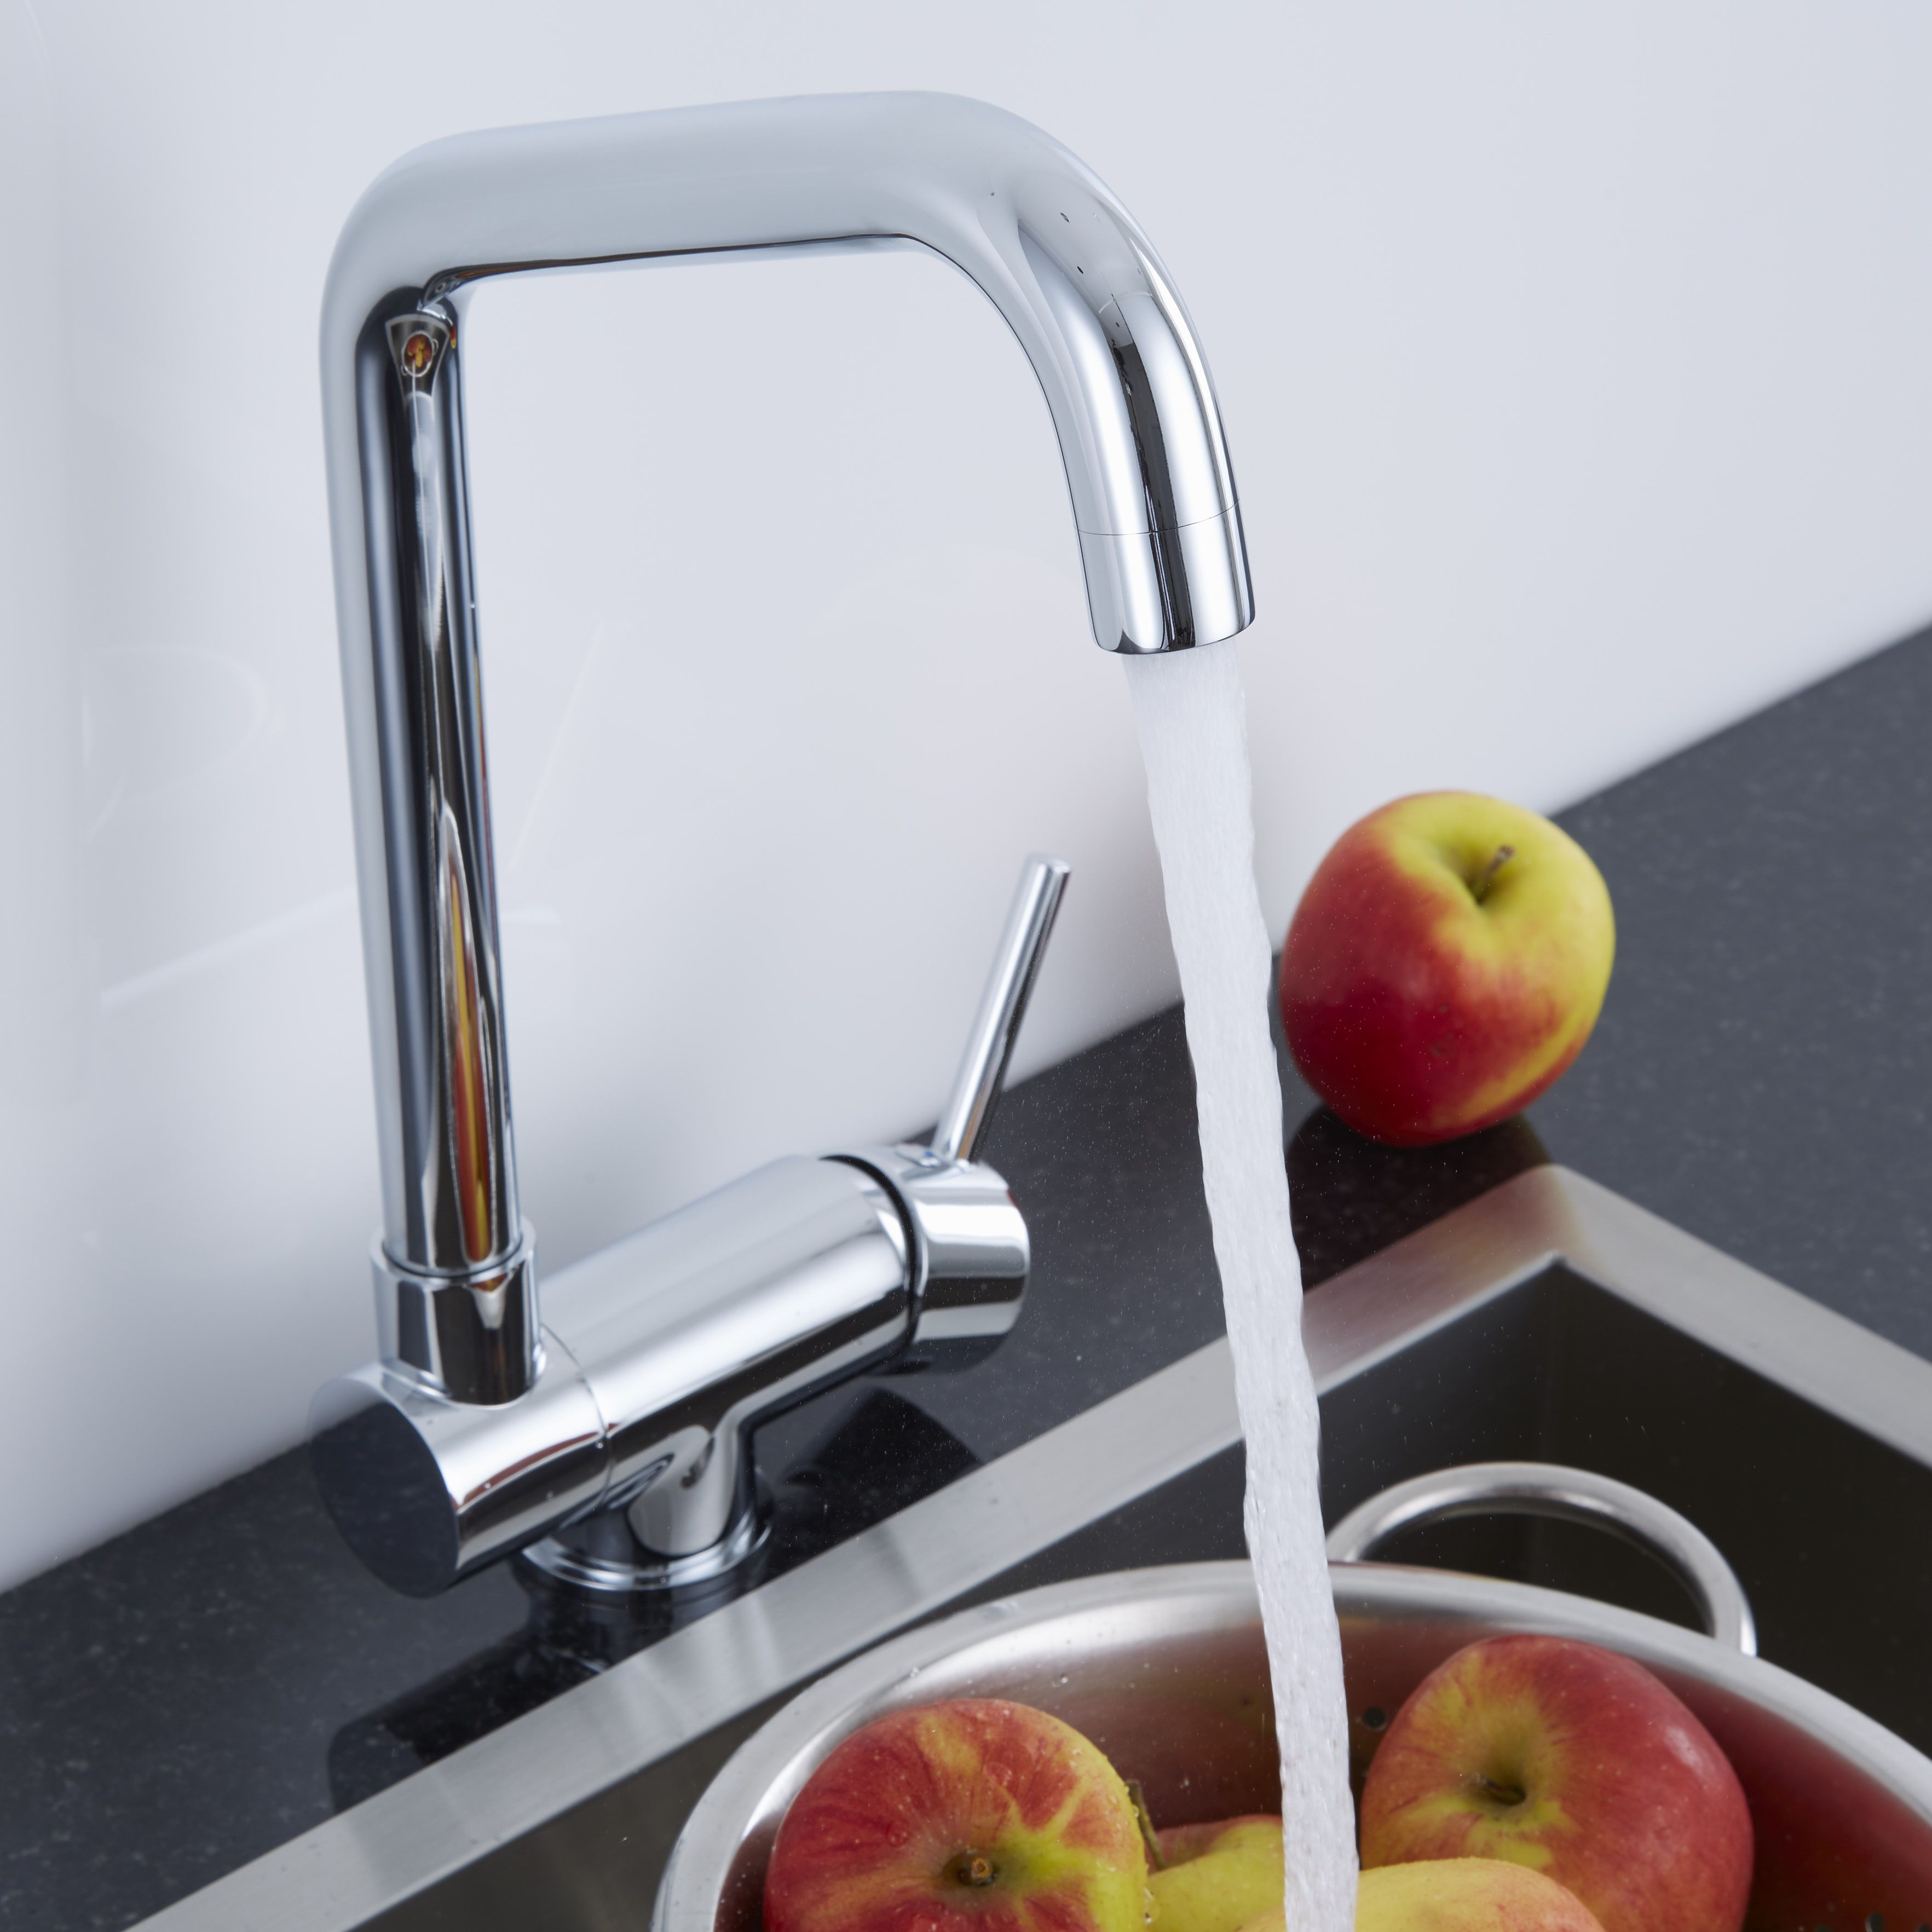 New Milano kitchen mixer tap coming soon